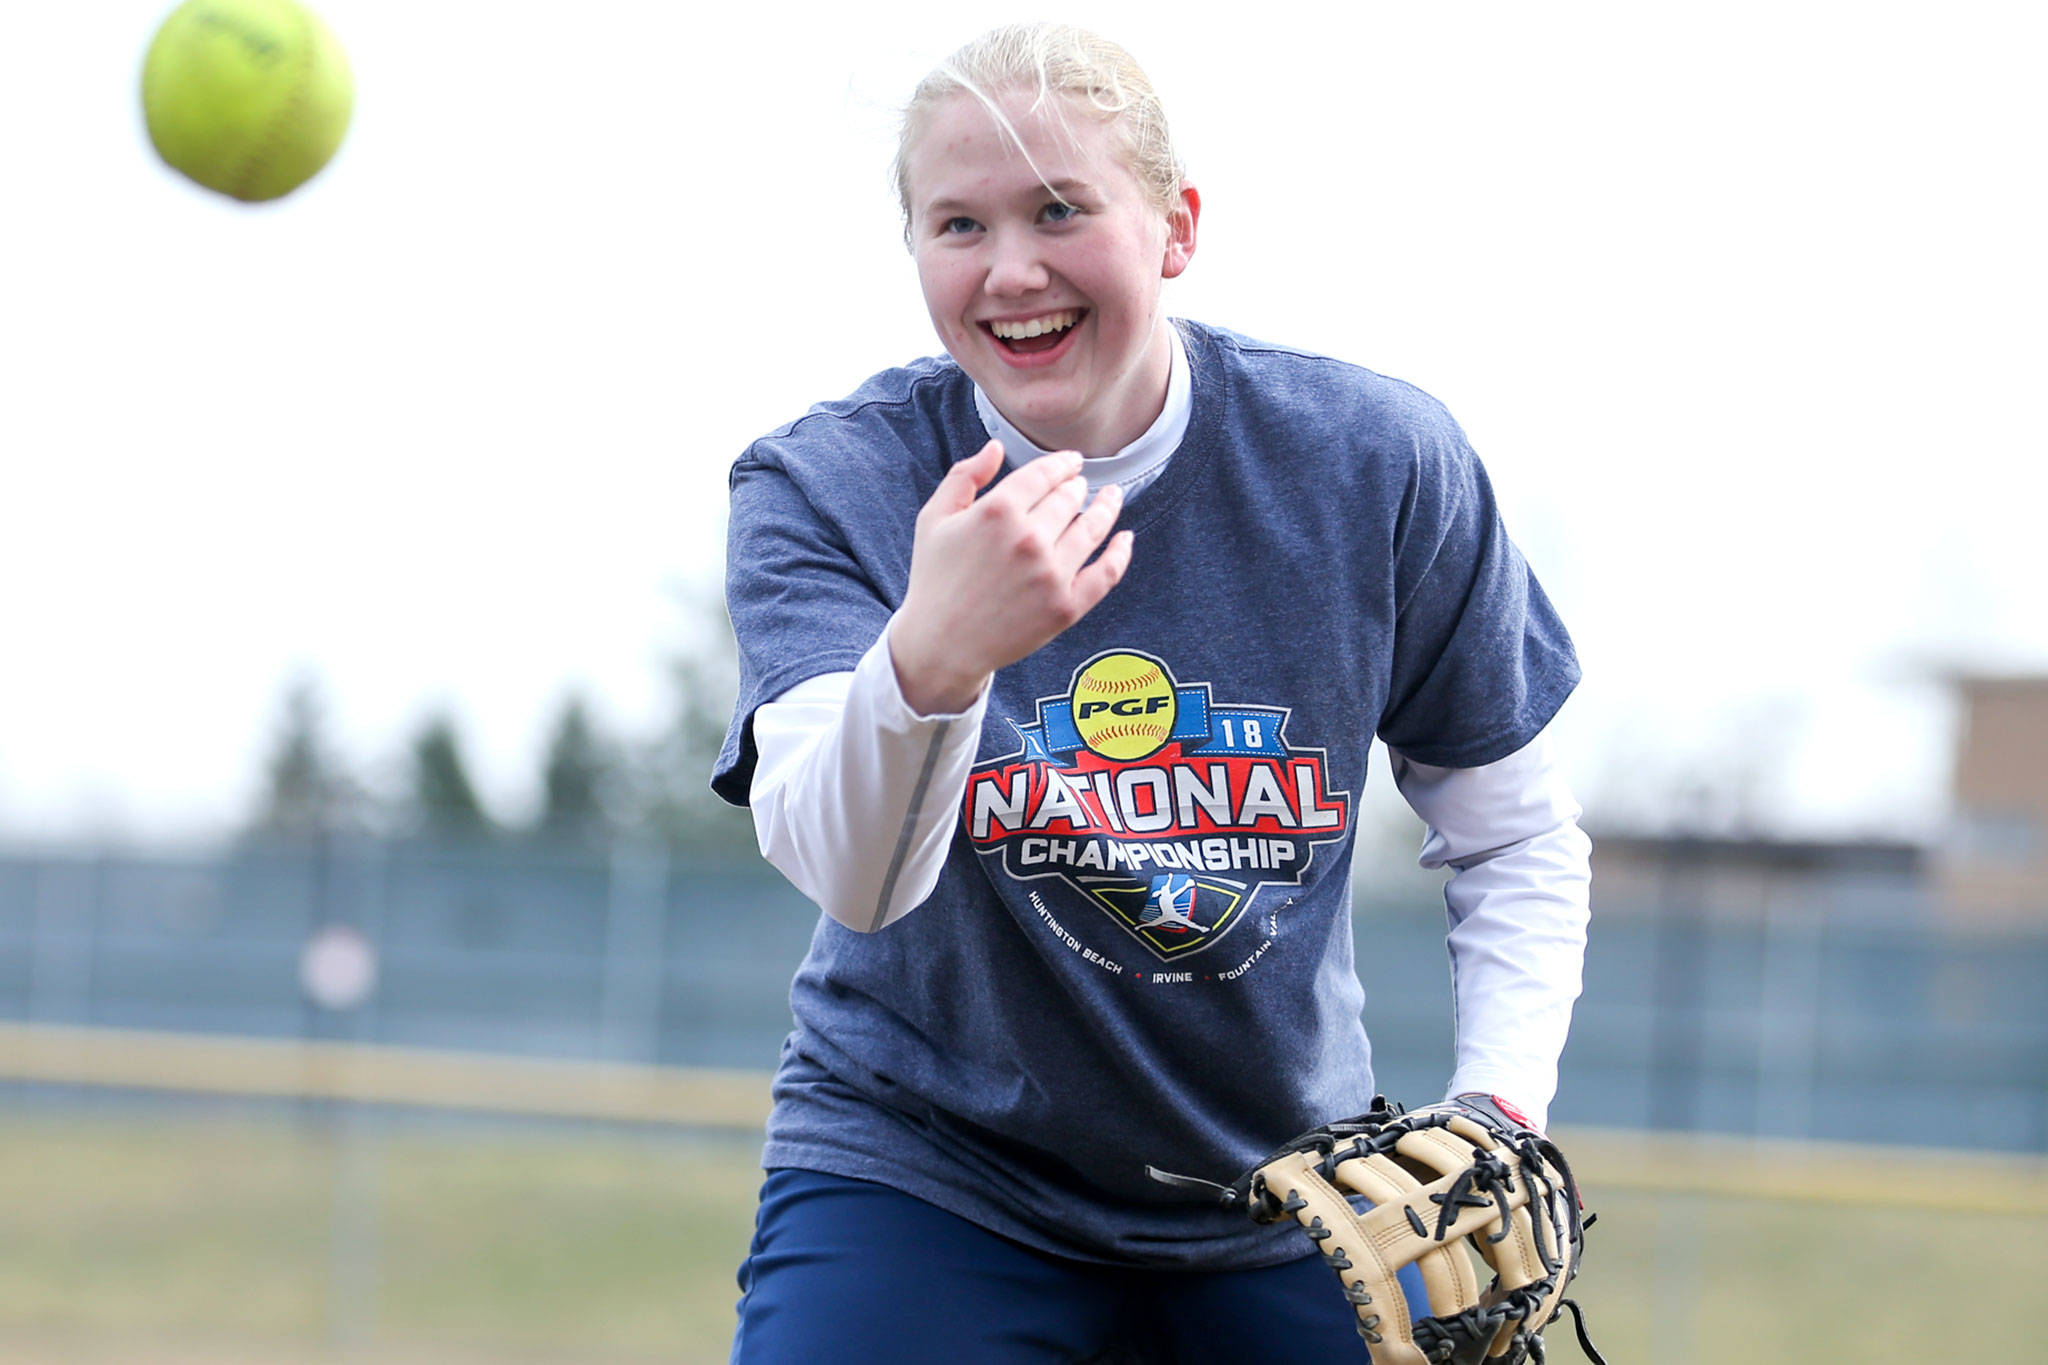 First baseman Ashley Jacobson, who has committed to play Division I softball at Stony Brook in New York, shares a laugh during practice. (Kevin Clark / The Herald)